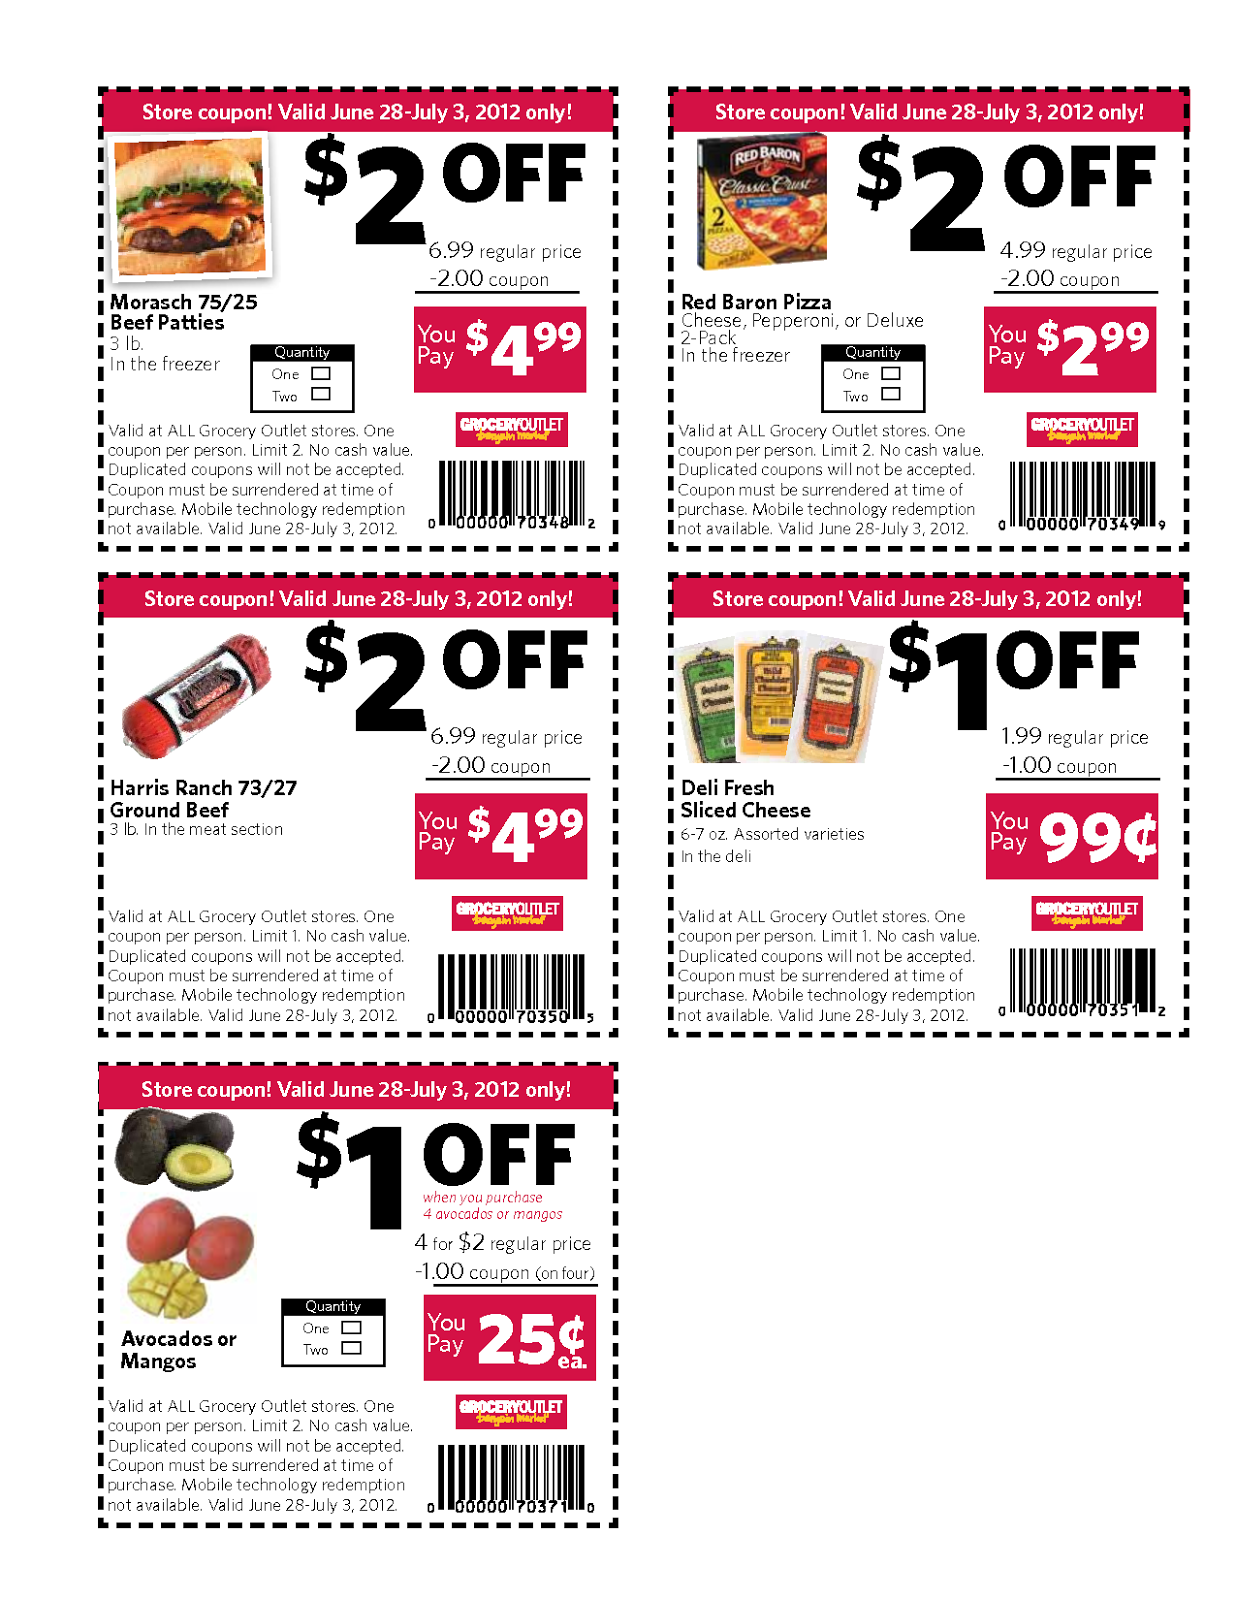 Click to find the best online coupons for groceries this week to print and bring to a grocery store near you.